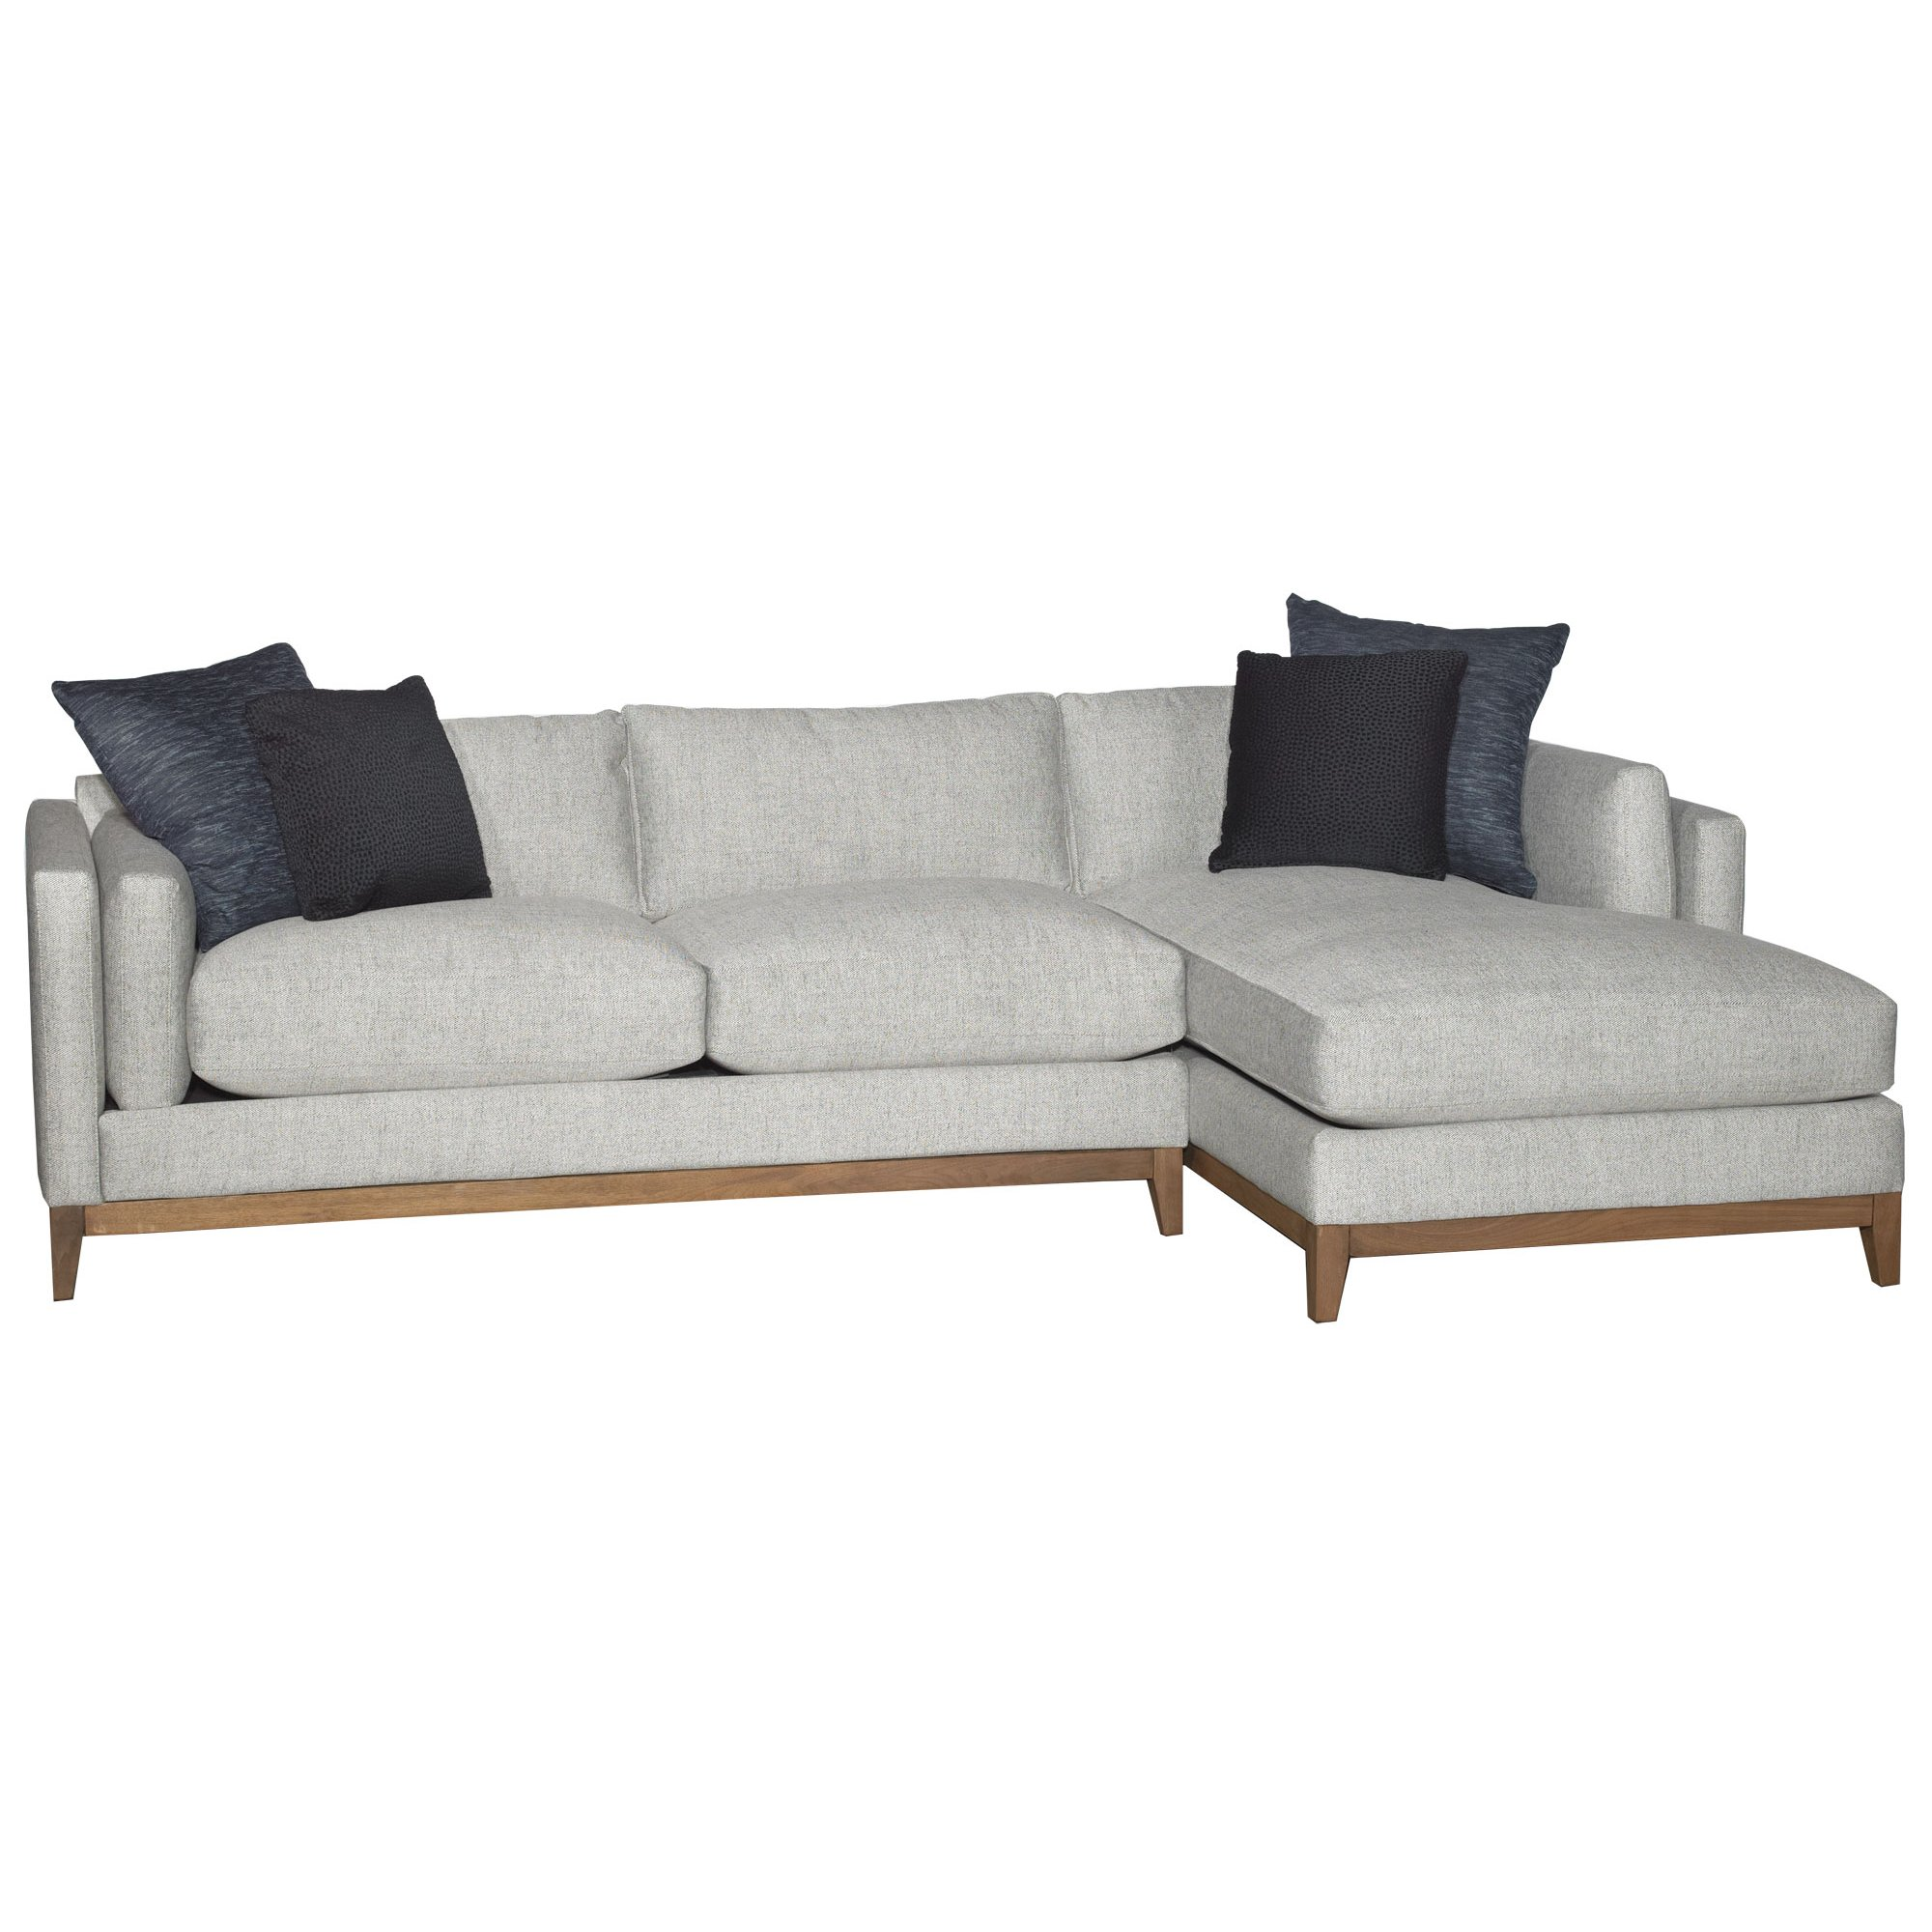 ... Mid-Century Modern Stone 2-Piece Sectional - Kelsey ...  sc 1 st  RC Willey : jonathan louis sectional - Sectionals, Sofas & Couches